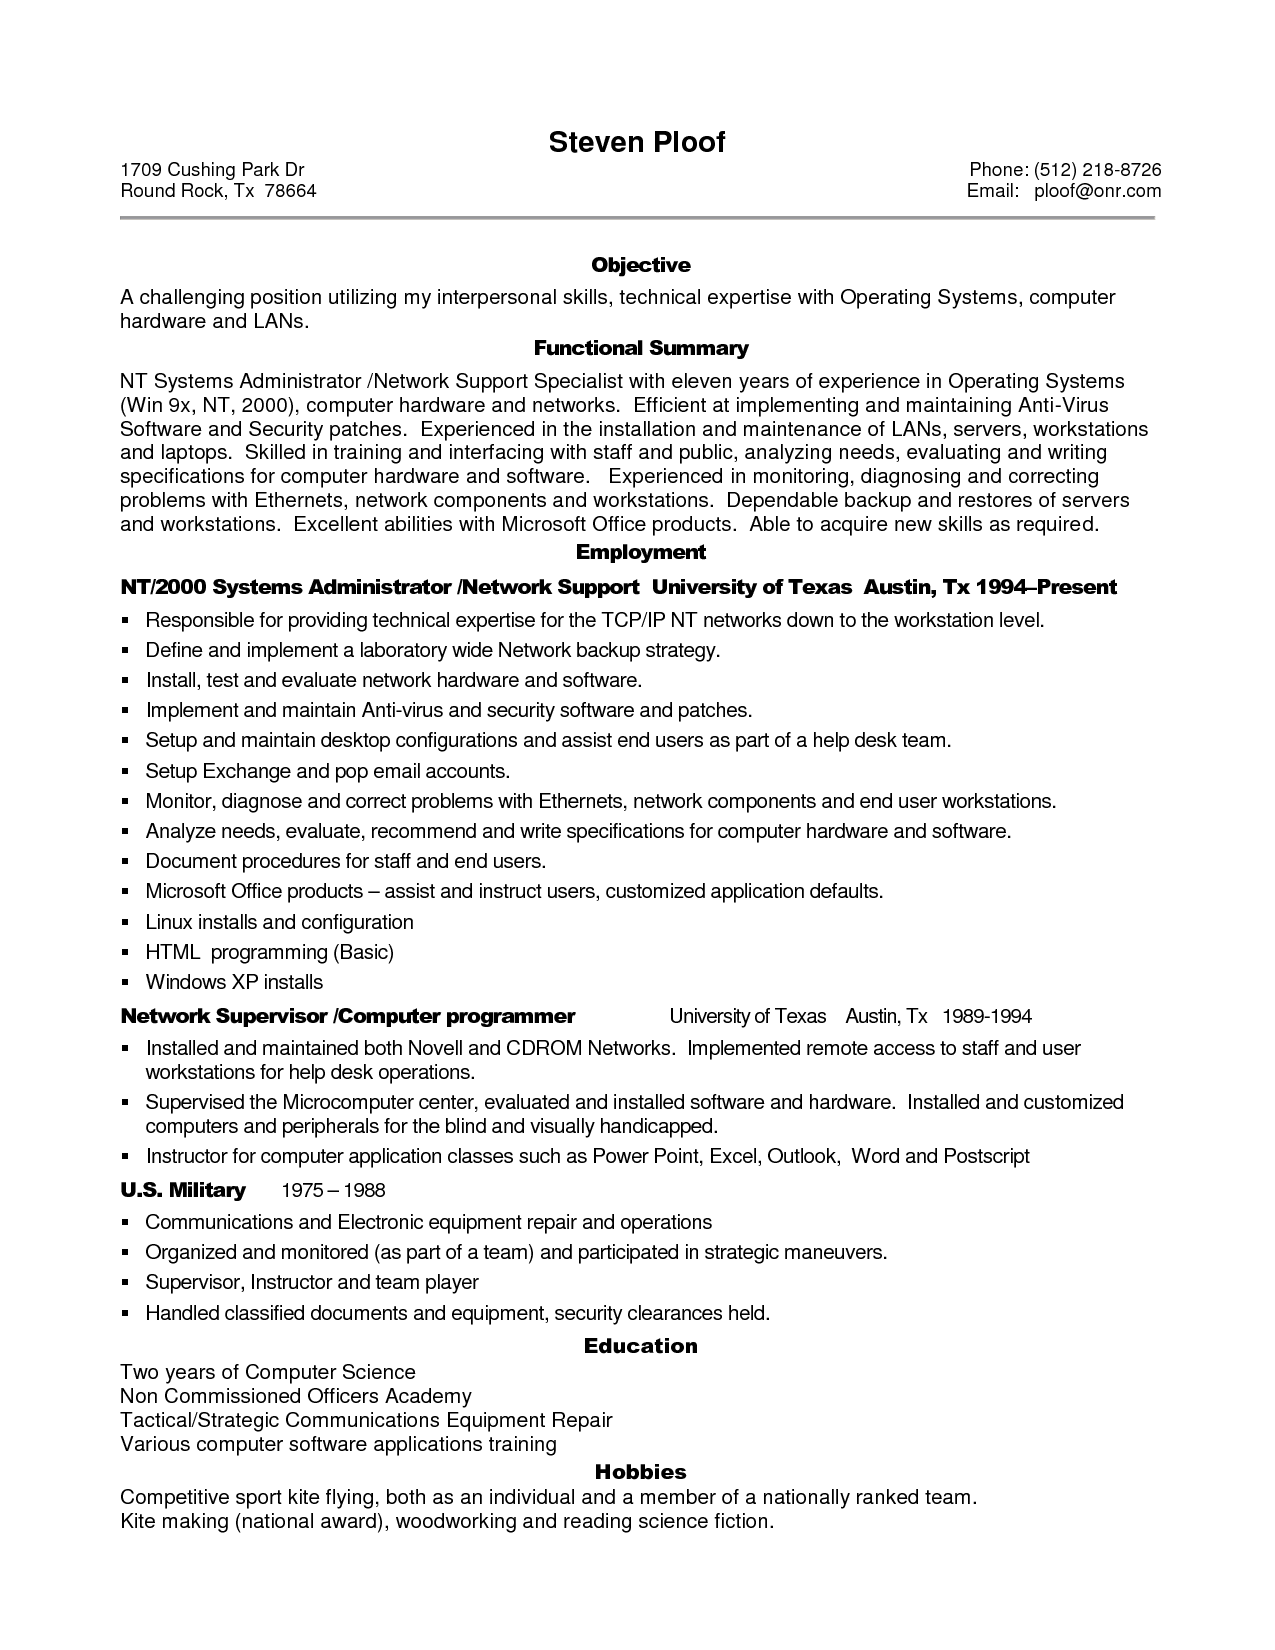 Resume Samples For Professionals Sample Resume For Experienced It Professional Sample